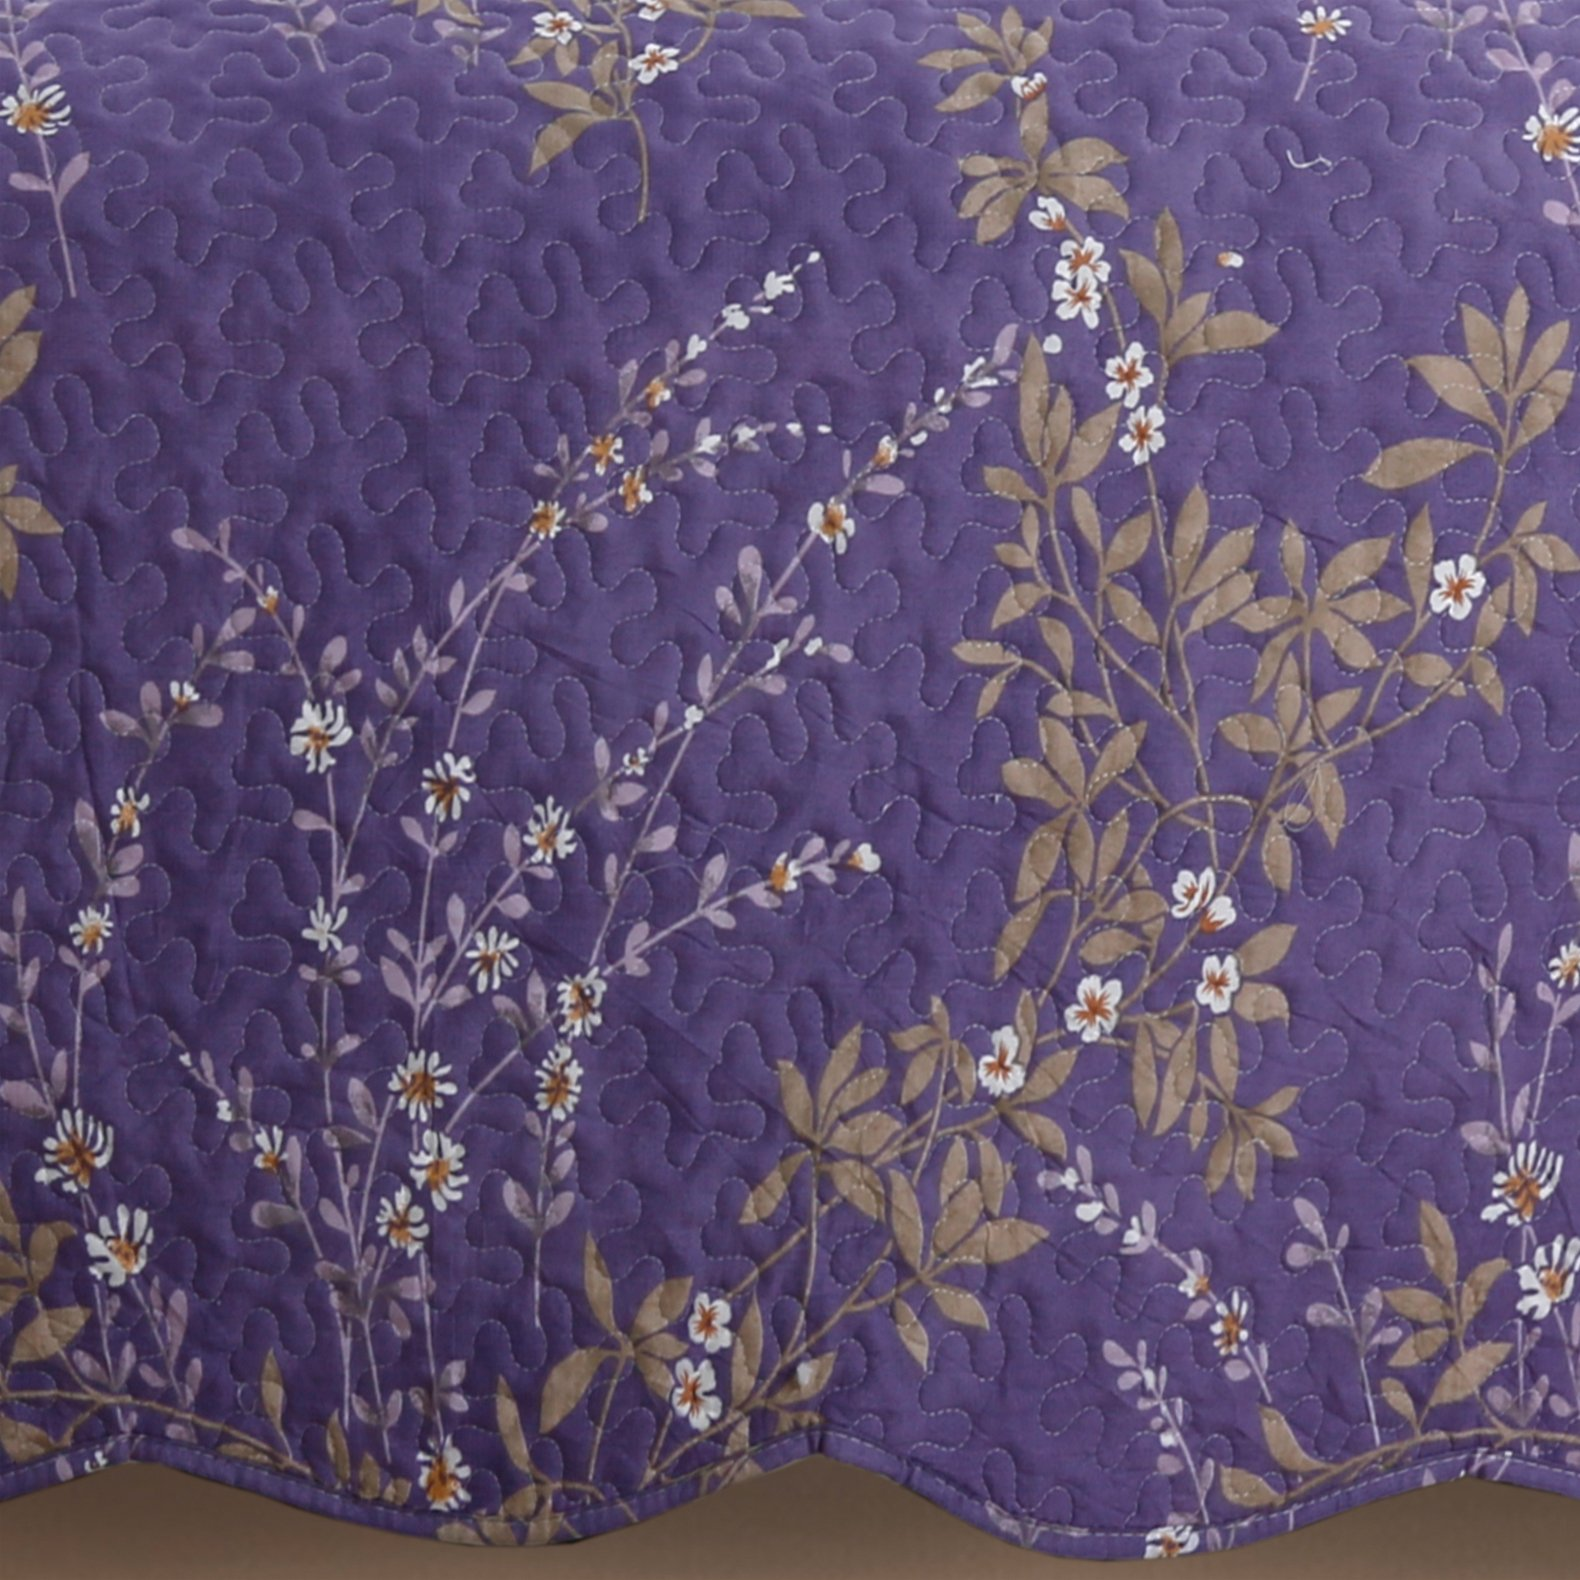 Kasentex Country-Chic Printed Pre-Washed Set. Microfiber Fabric Floral Design Quilt + 2 Shams, KING 104X90+20X36 X2, Purple by Kasentex (Image #5)